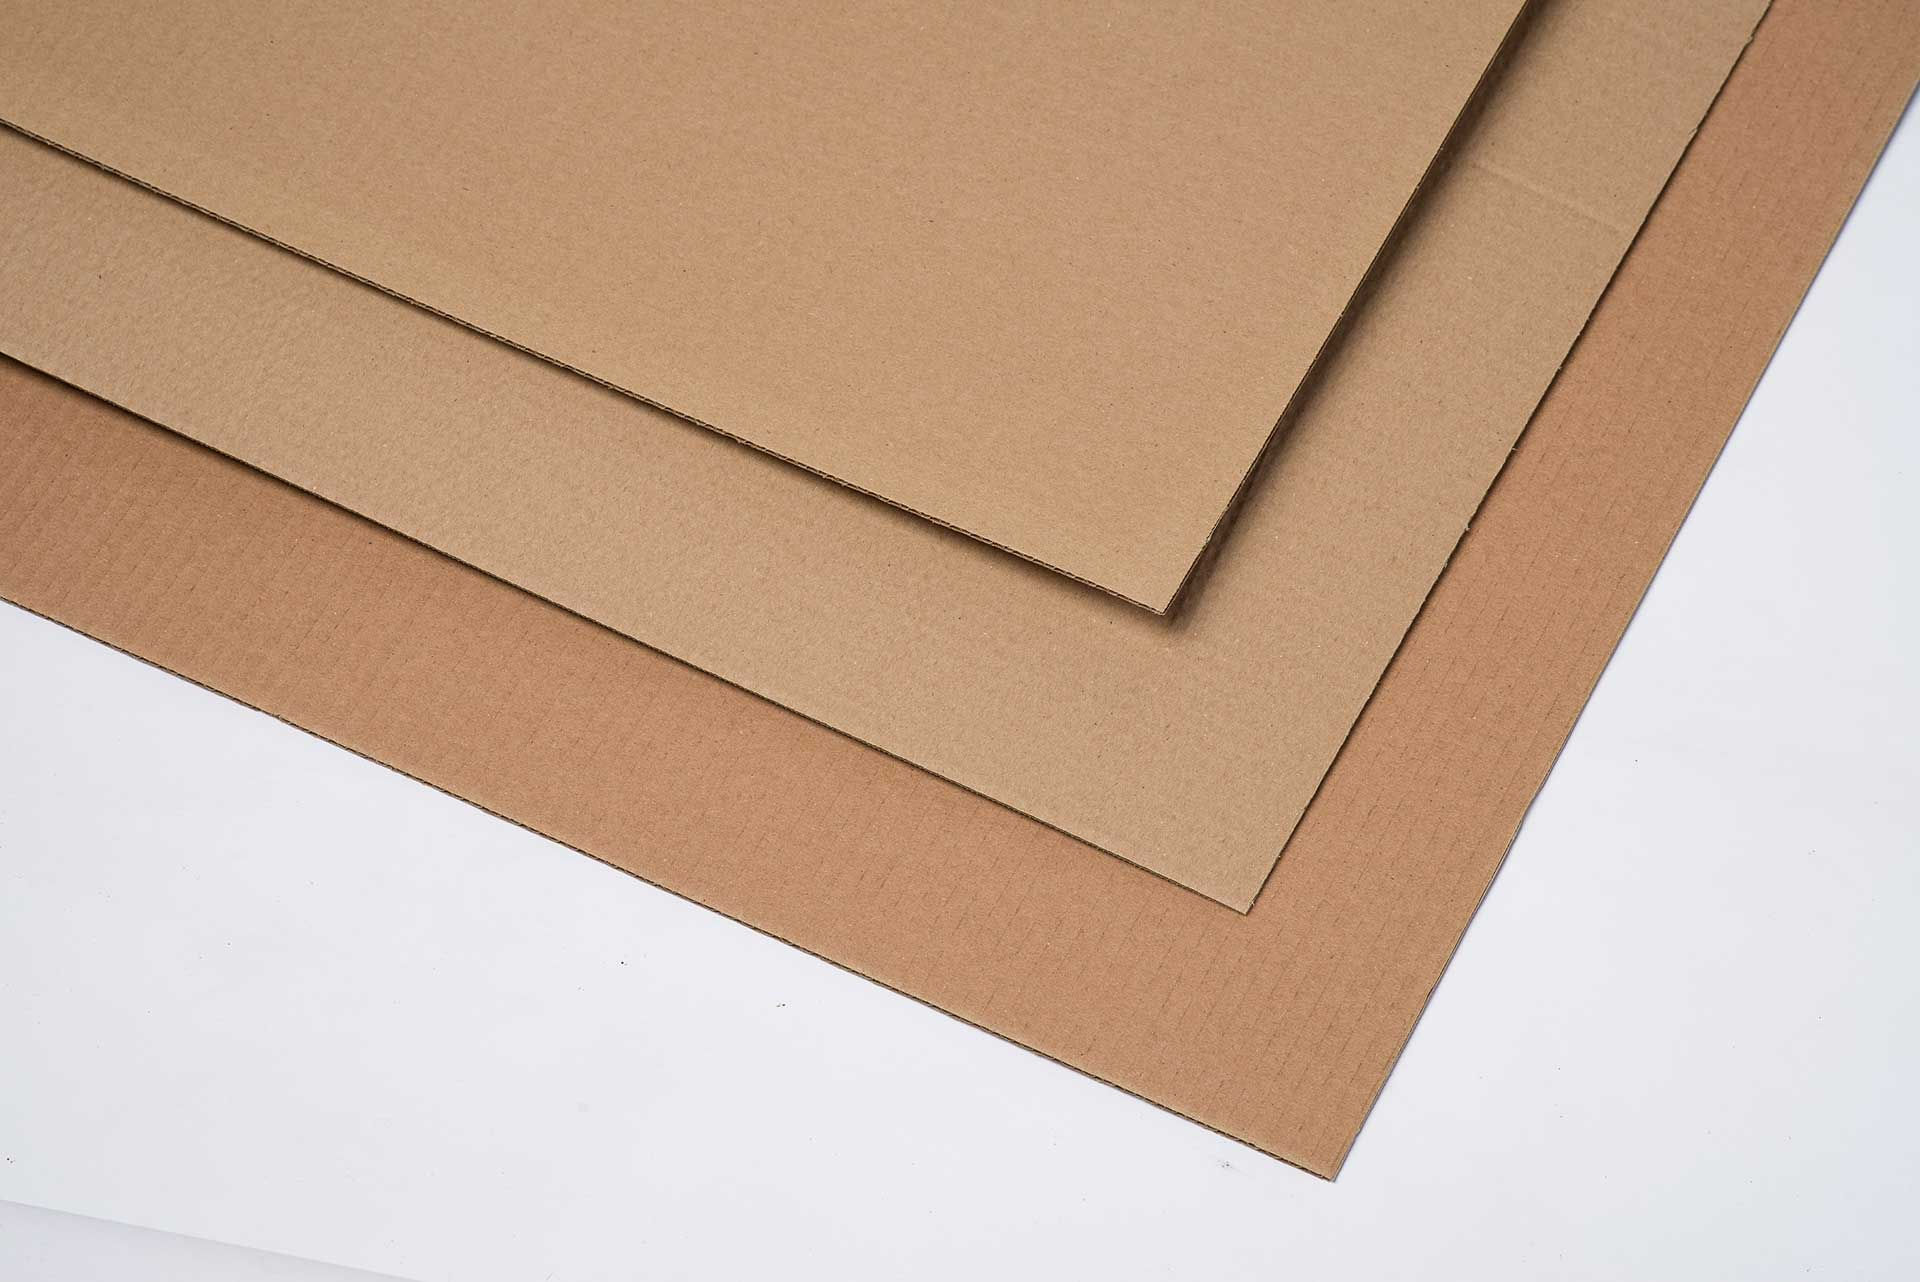 sheets-layer-pads